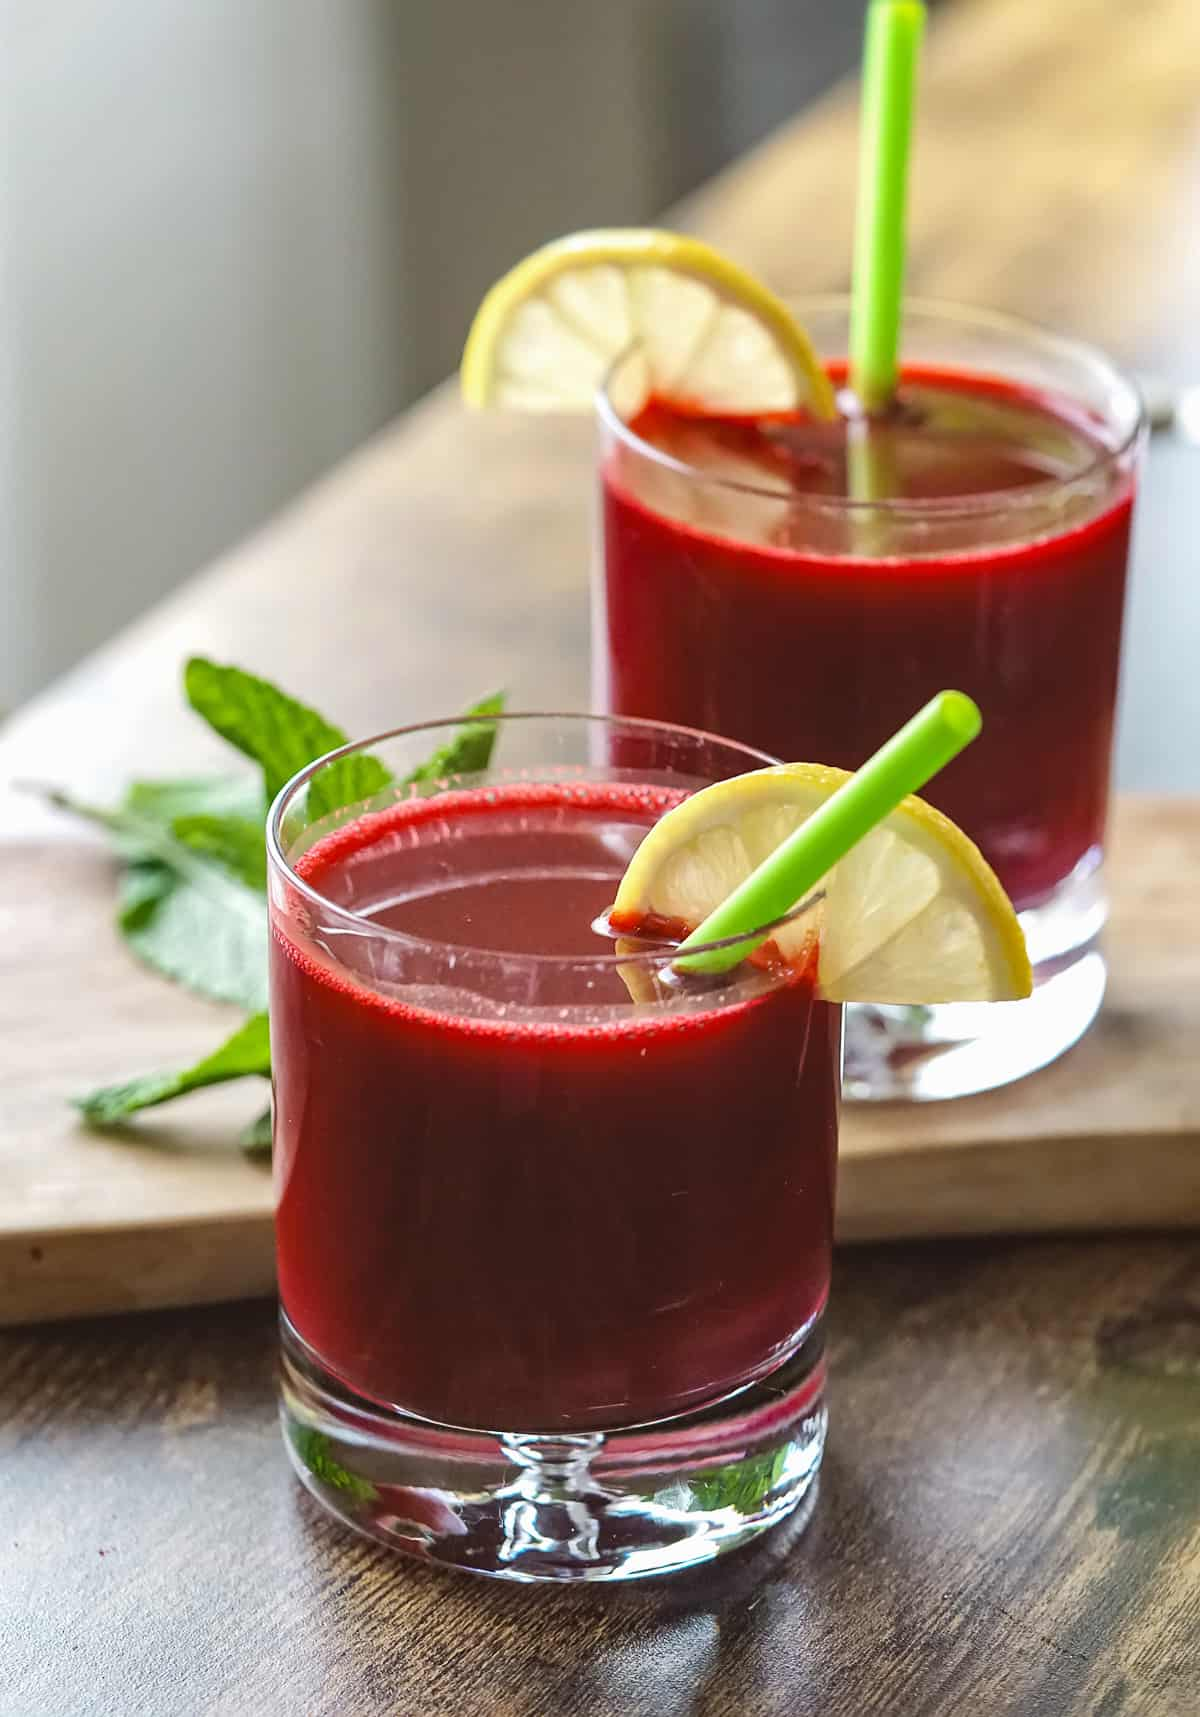 Apple beetroot carrot juice or abc juice in a glass.